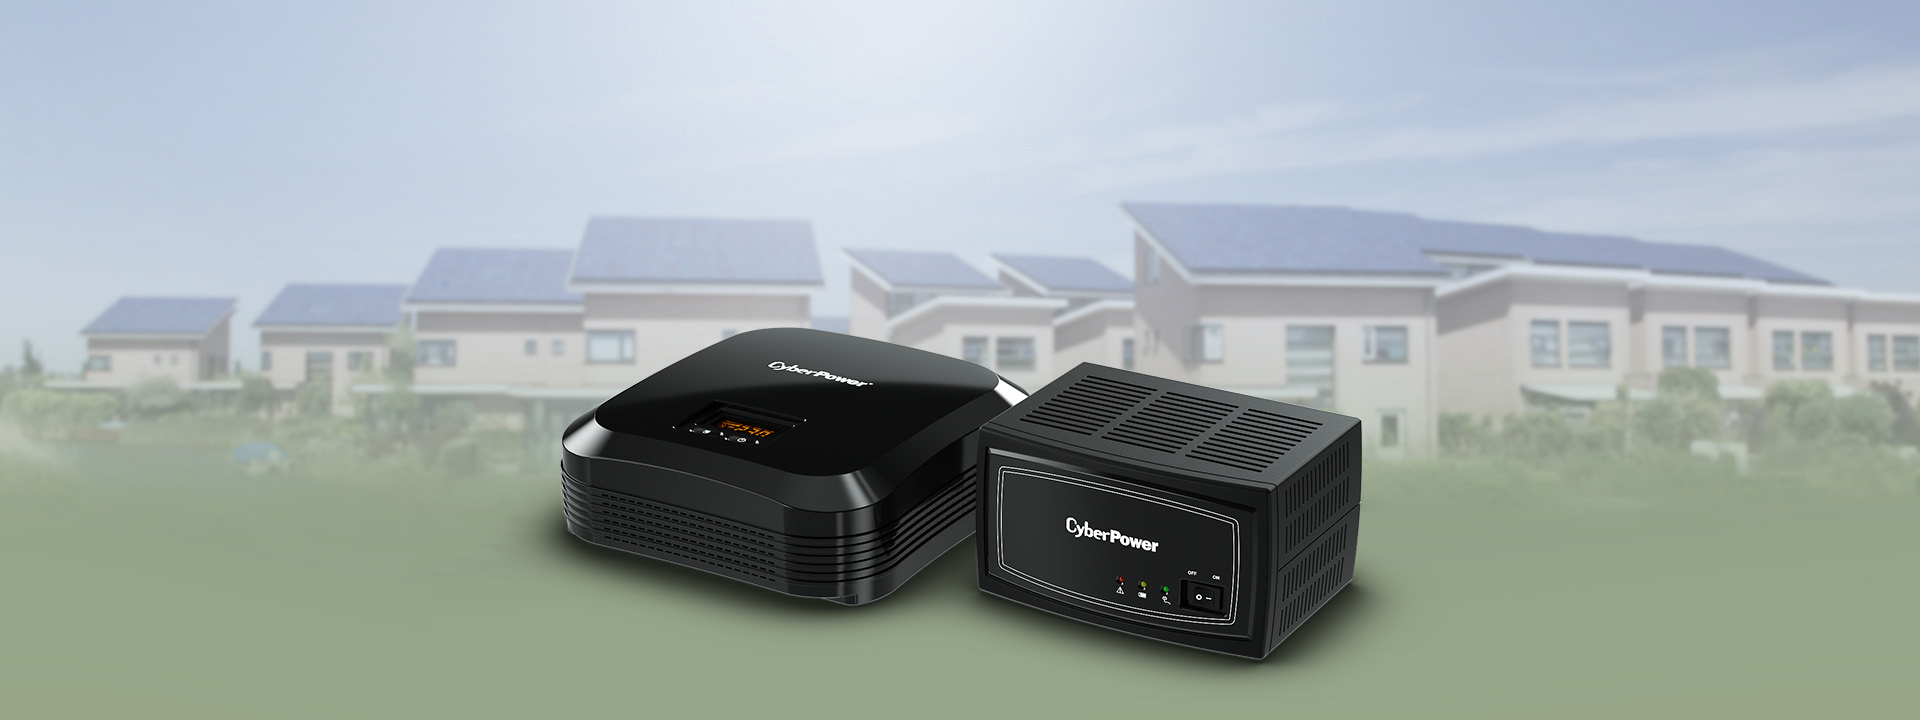 CyberPower's Static UPS is the ideal backup power supply with generator compatibility and surge protection